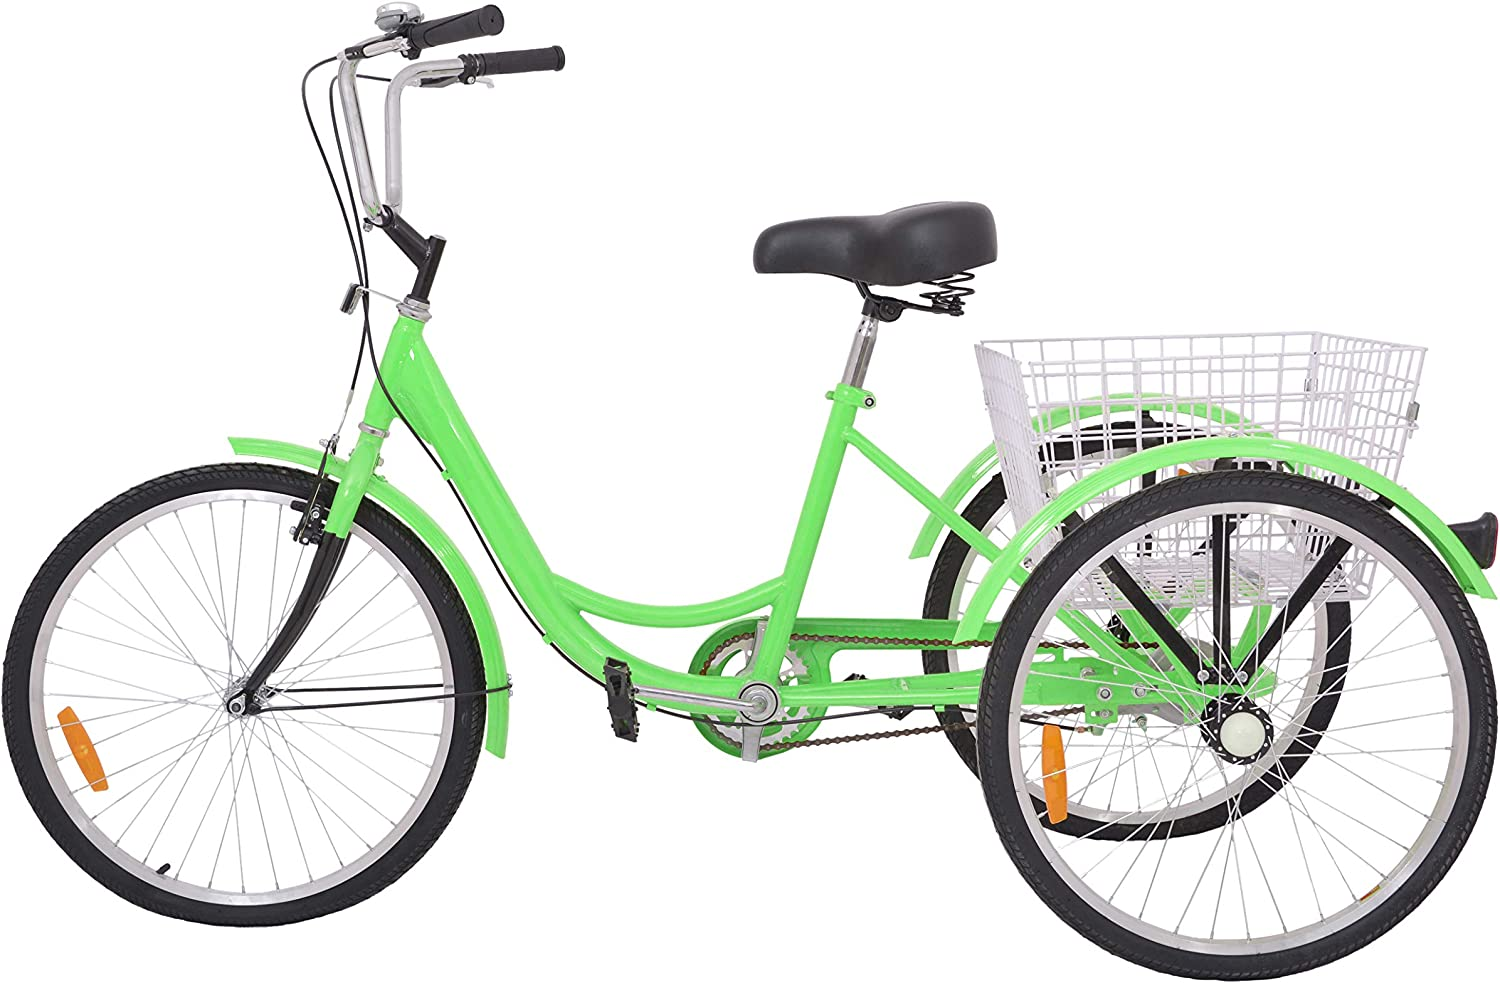 Slsy 20 inch Adulat Tricycles